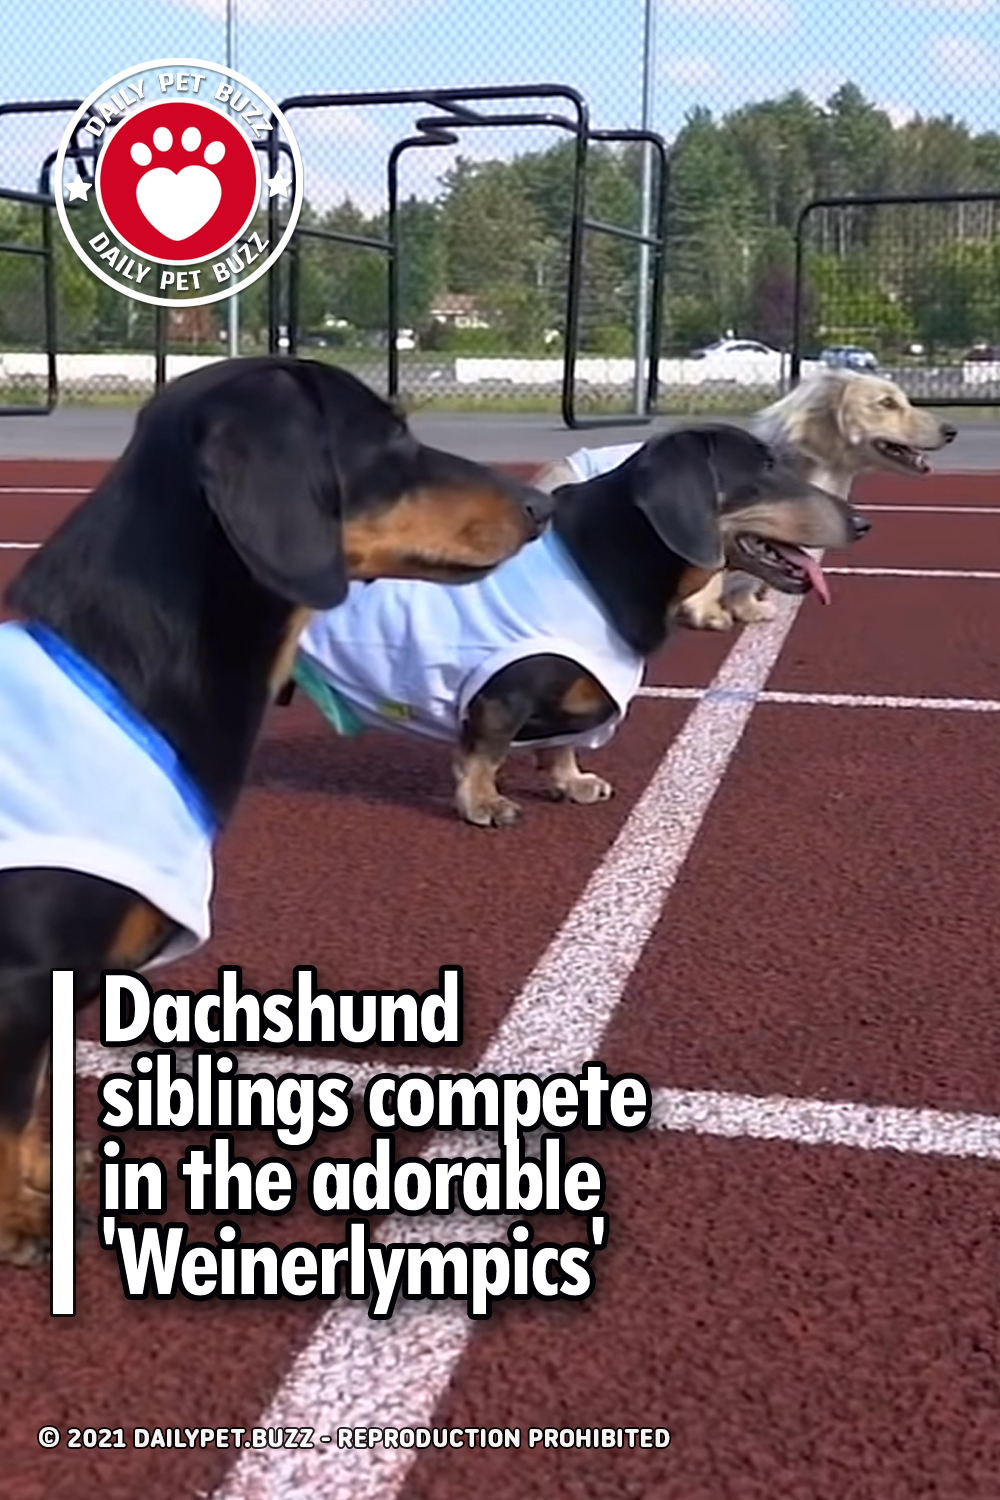 Dachshund siblings compete in the adorable \'Weinerlympics\'